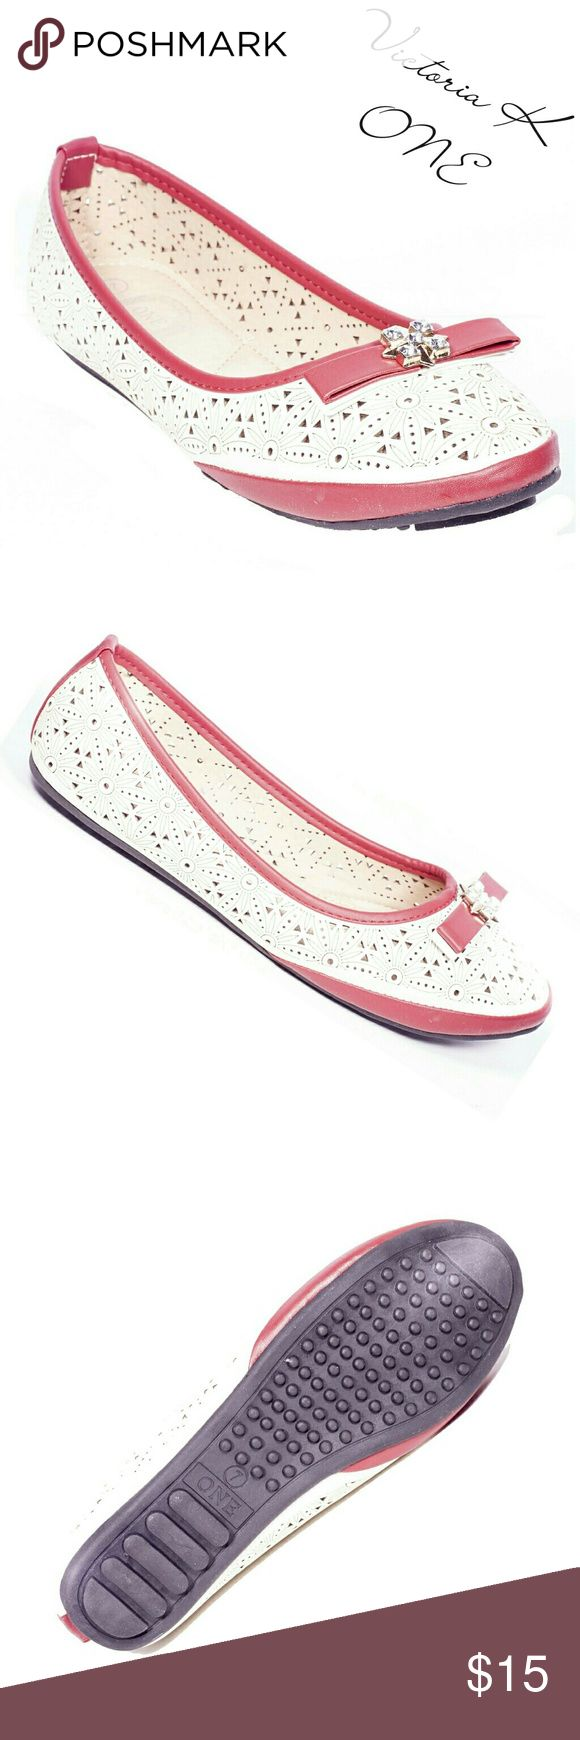 """Women Ballerina Flats with Bow, b-2094, Beige Red Brand new style! Victoria K perforated two-color, beige and red, woman ballerina flats with a sparkle-studded two-color bow in the front. From the ONE collection. Soft sole, very comfortable. Bubbled bottom sole for extra traction. A true staple in ladies shoes fashion! Measurements: size 7 measures 9.5"""", sz 7.5 - 9 3/4"""", sz 8 - 10"""", sz 8.5 - 10 1/4"""", sz 9 - 10.5"""", all half sizes are in 1/4"""" increments of each other. Tory K  Shoes Flats…"""